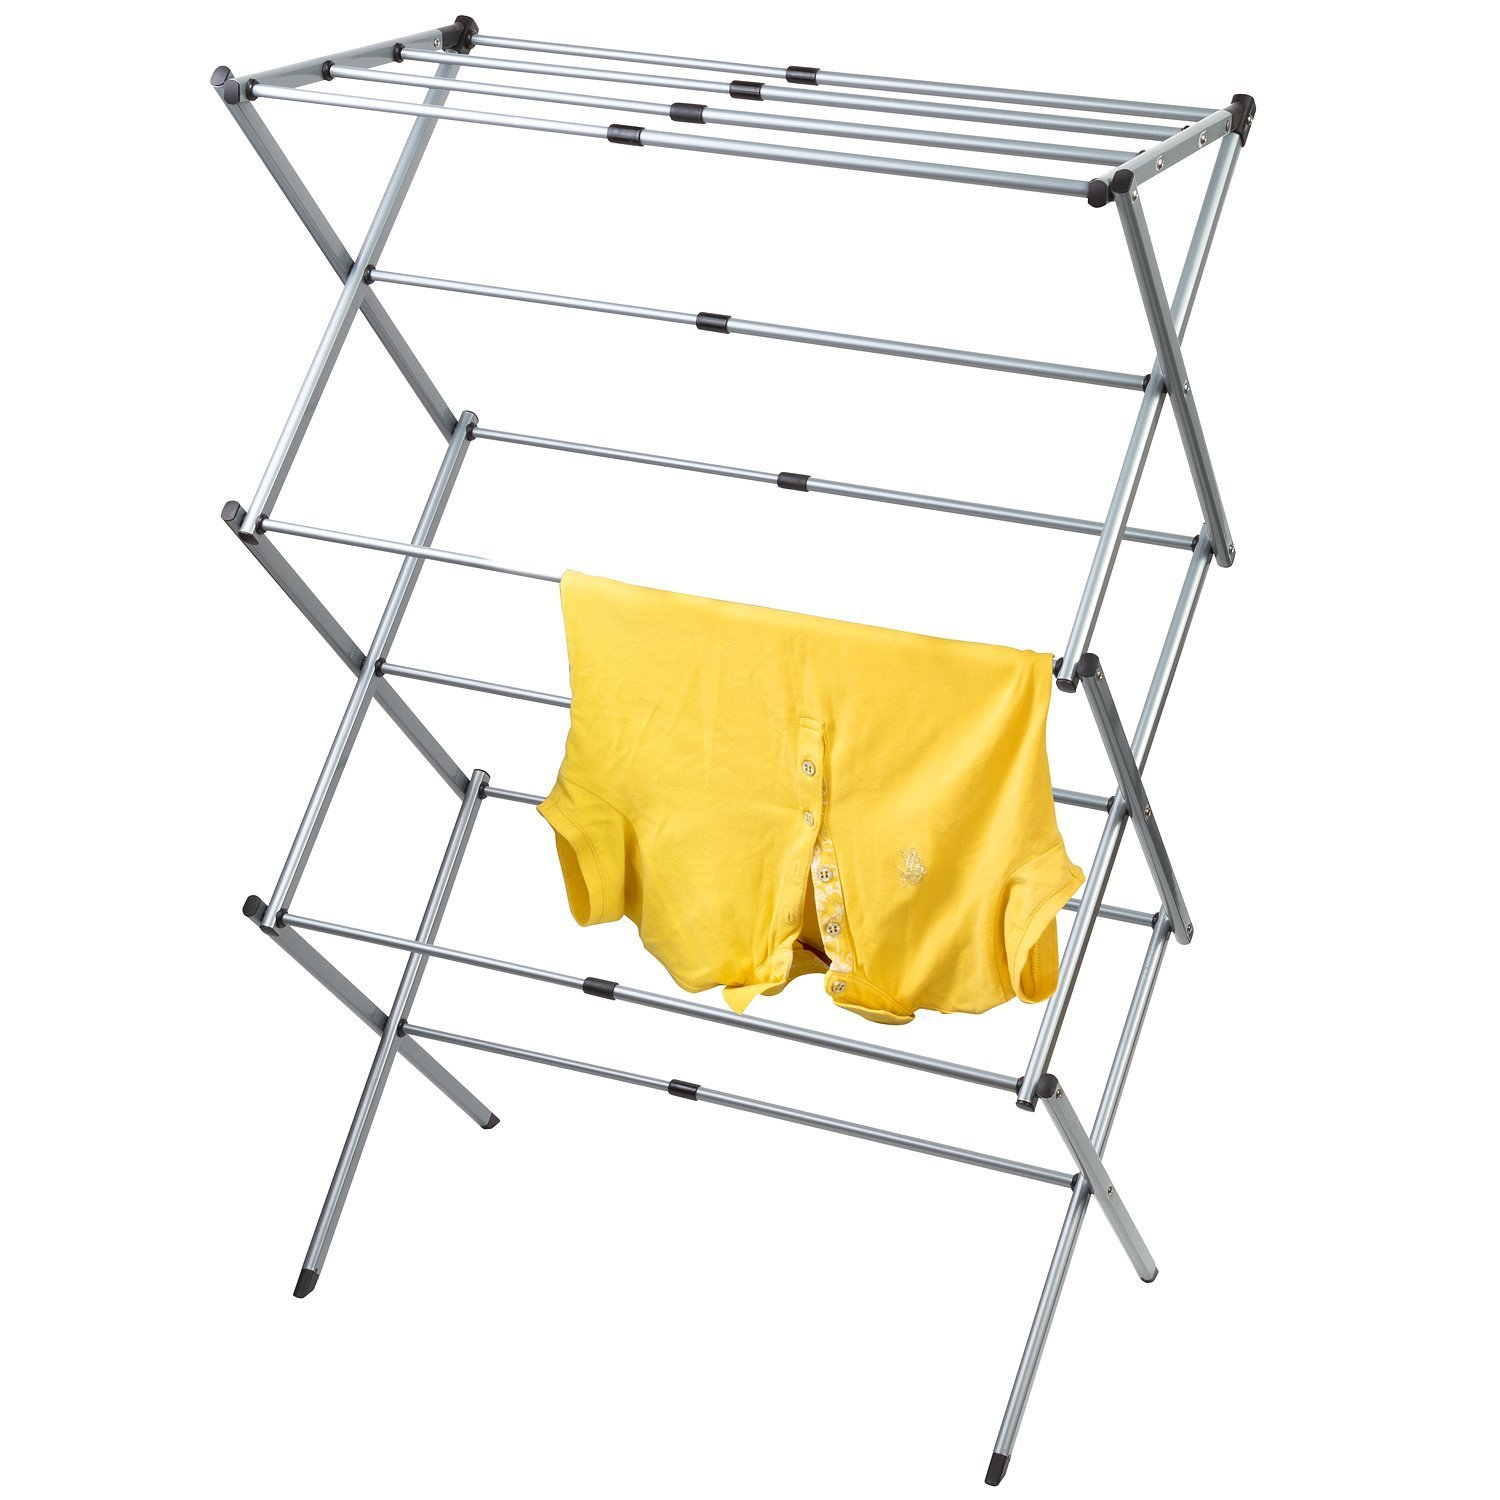 Artmoon GOBI Foldable Drying Rack Horse Extendable Telescopic Clothes Dryer 17''- 29,5'' Length, Anti-Rust Steel 5'' Length